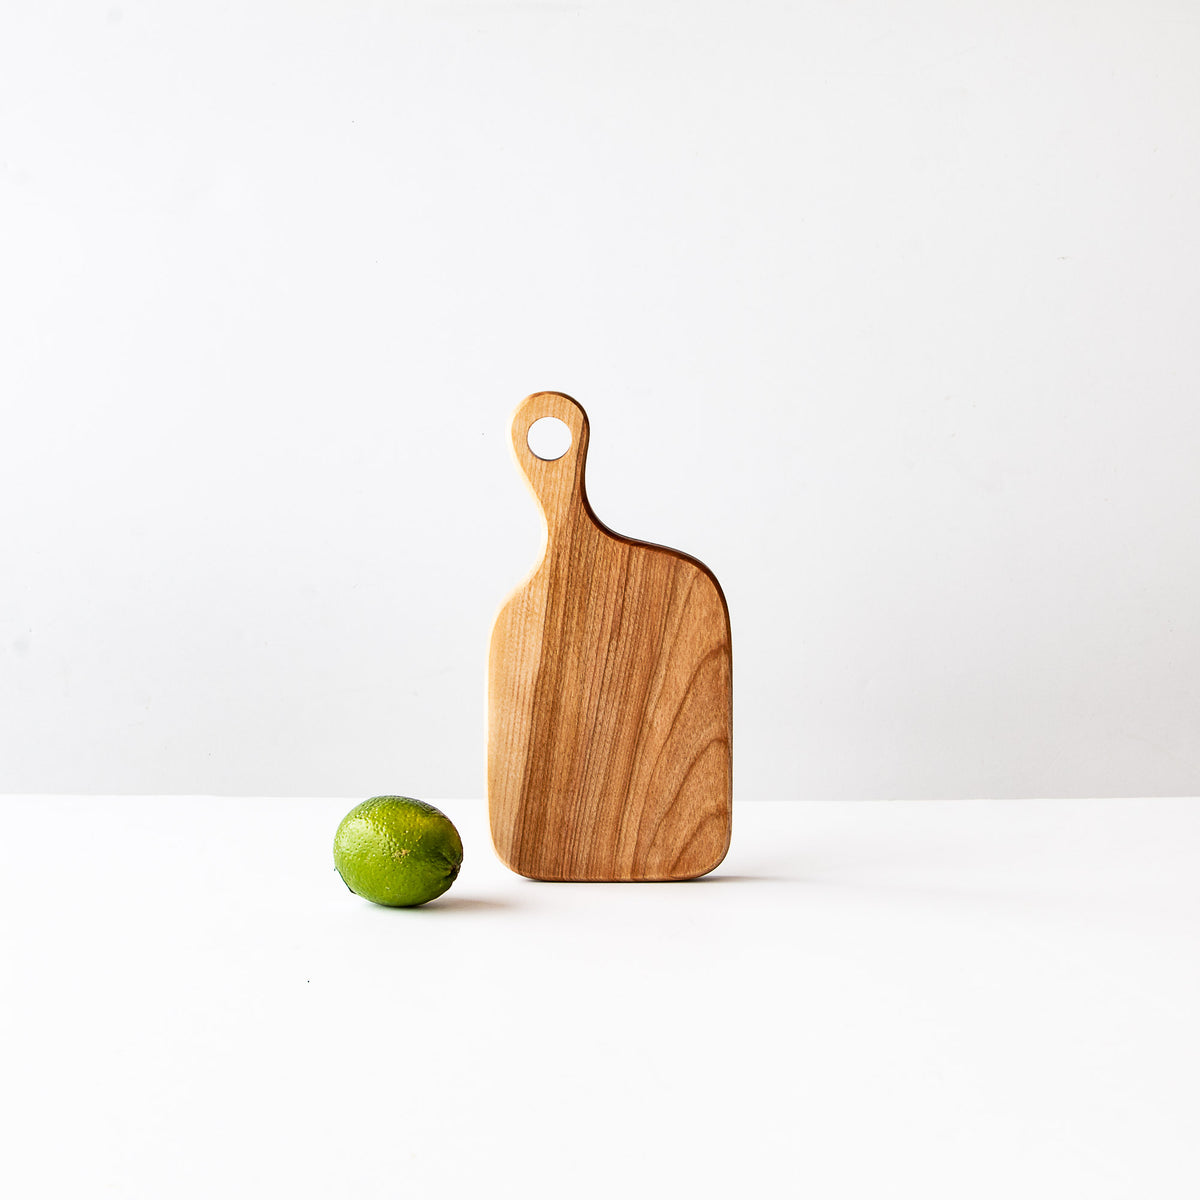 Smôl - Wooden Board in Birch Shown With Lime - Sold by Chic & Basta